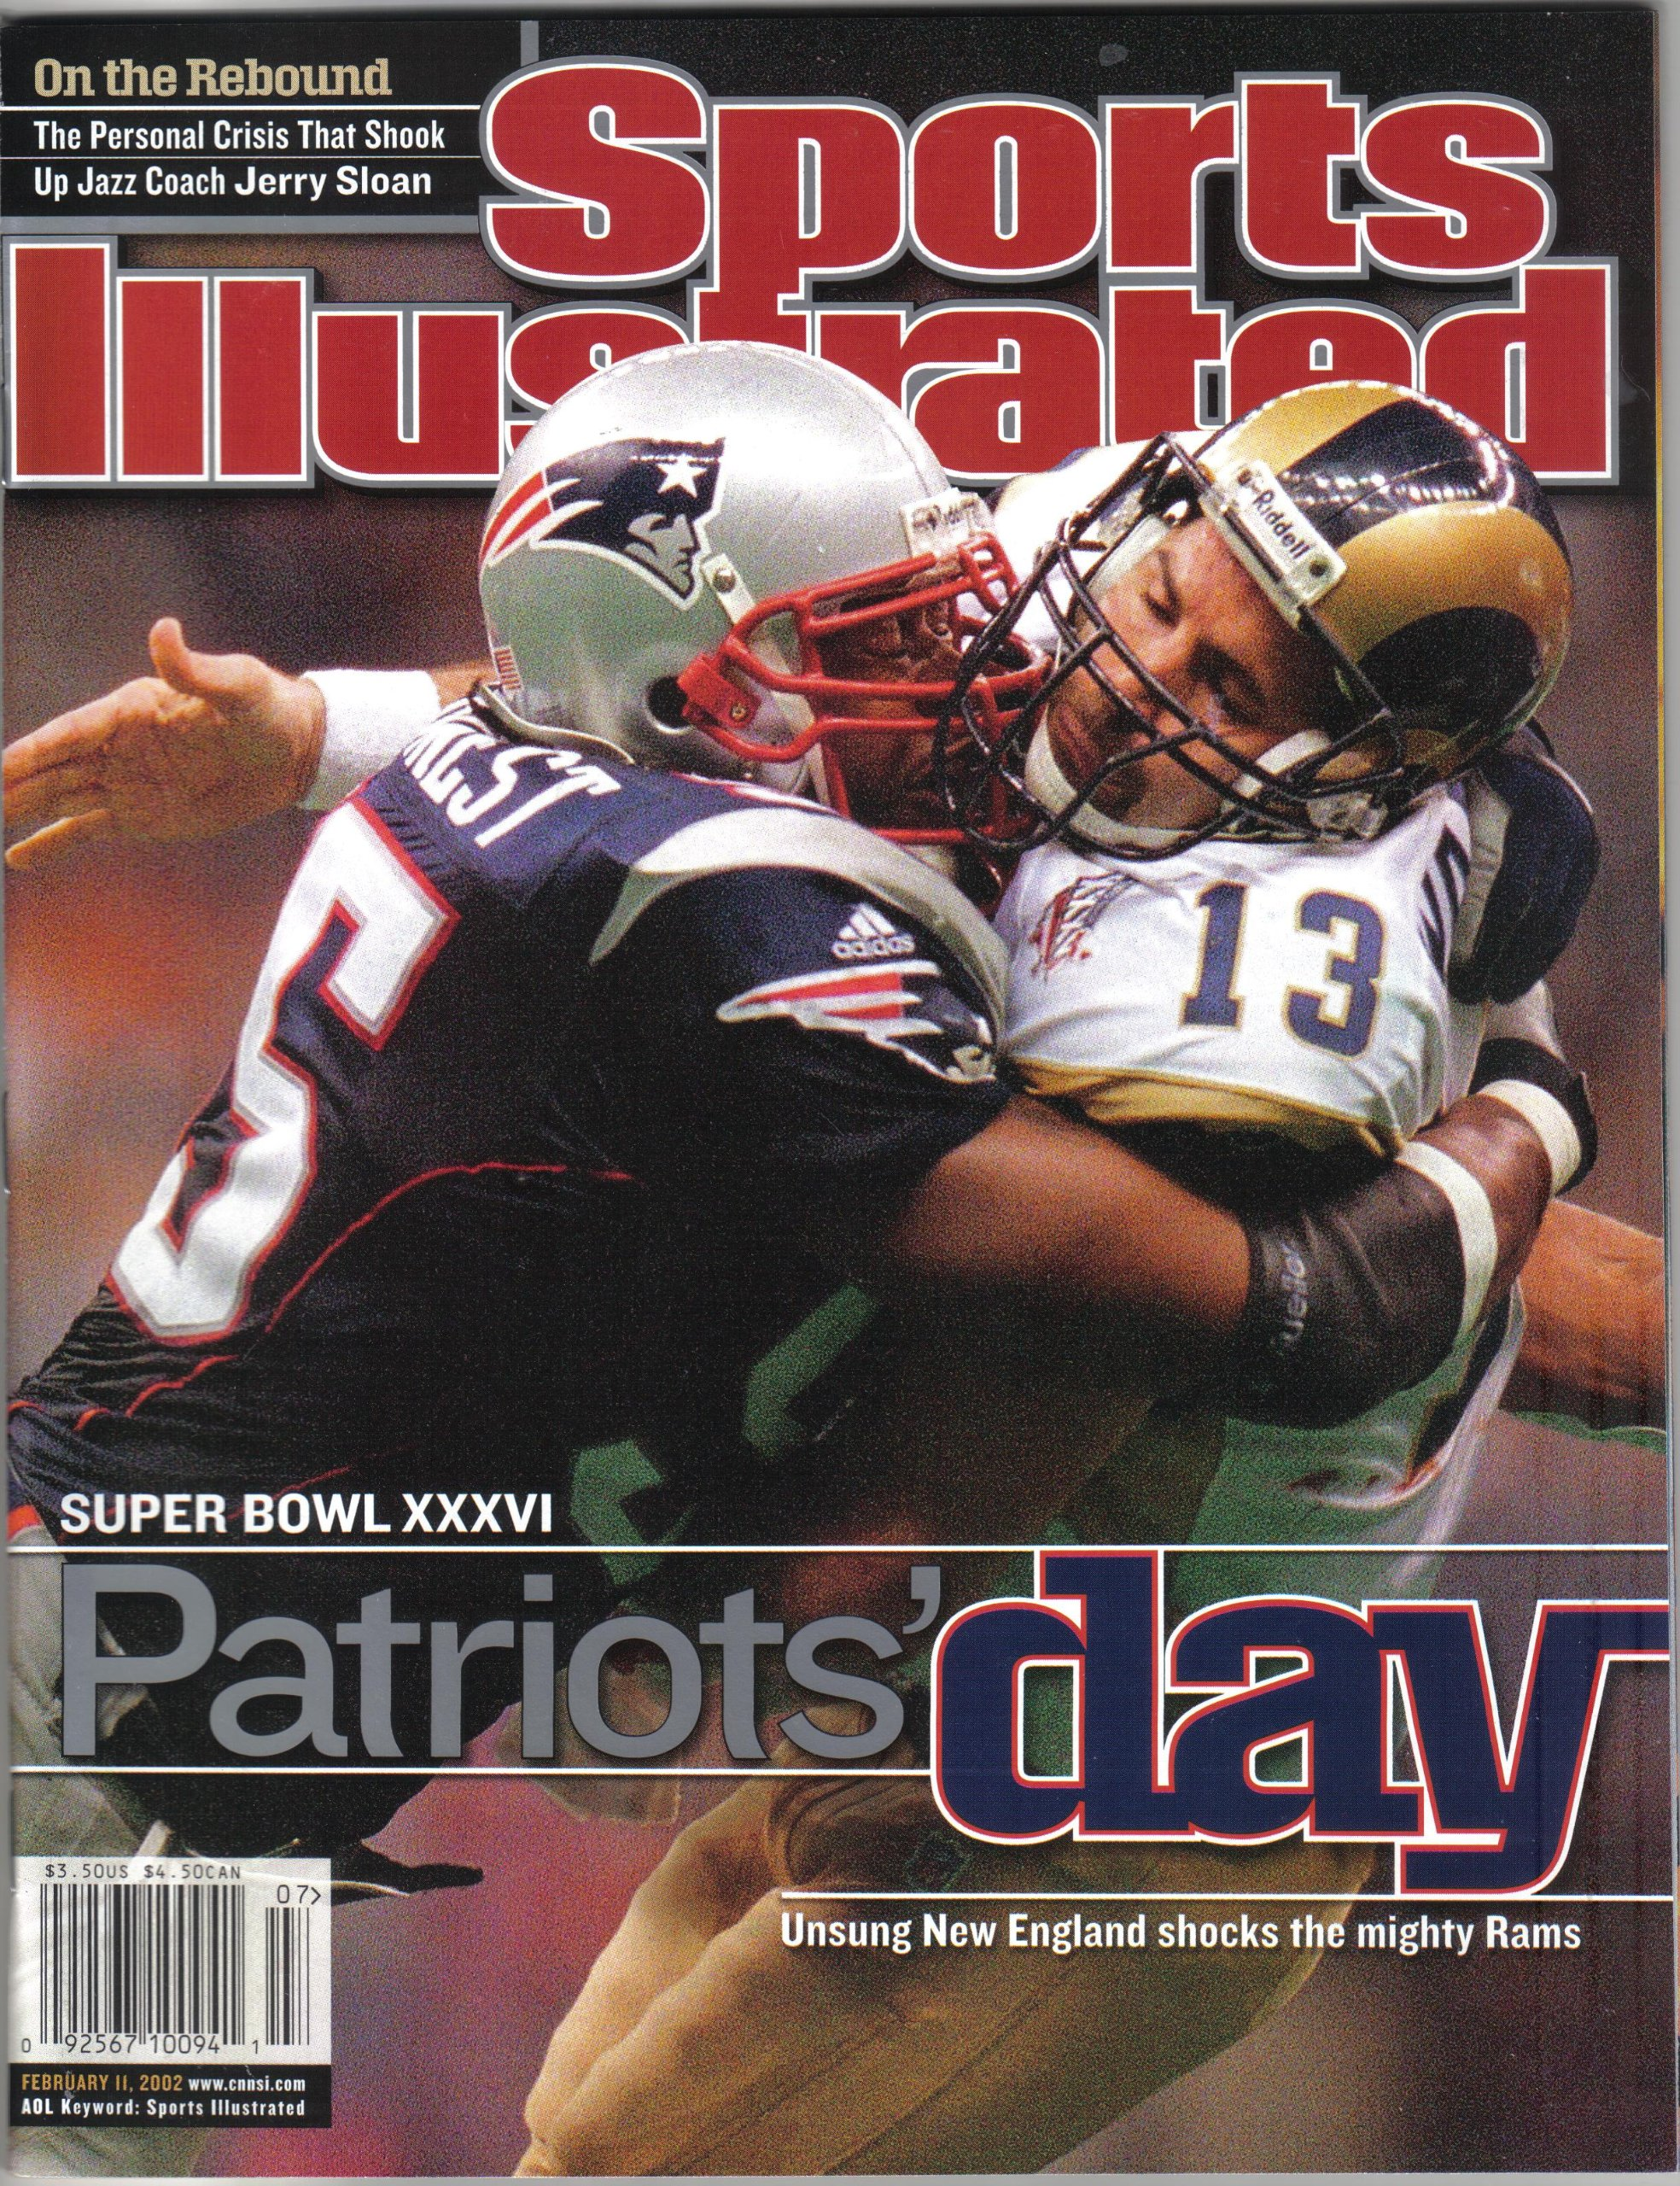 Download Sports Illustrated - February 11, 2002 (Volume 96, Number 3) (96) pdf